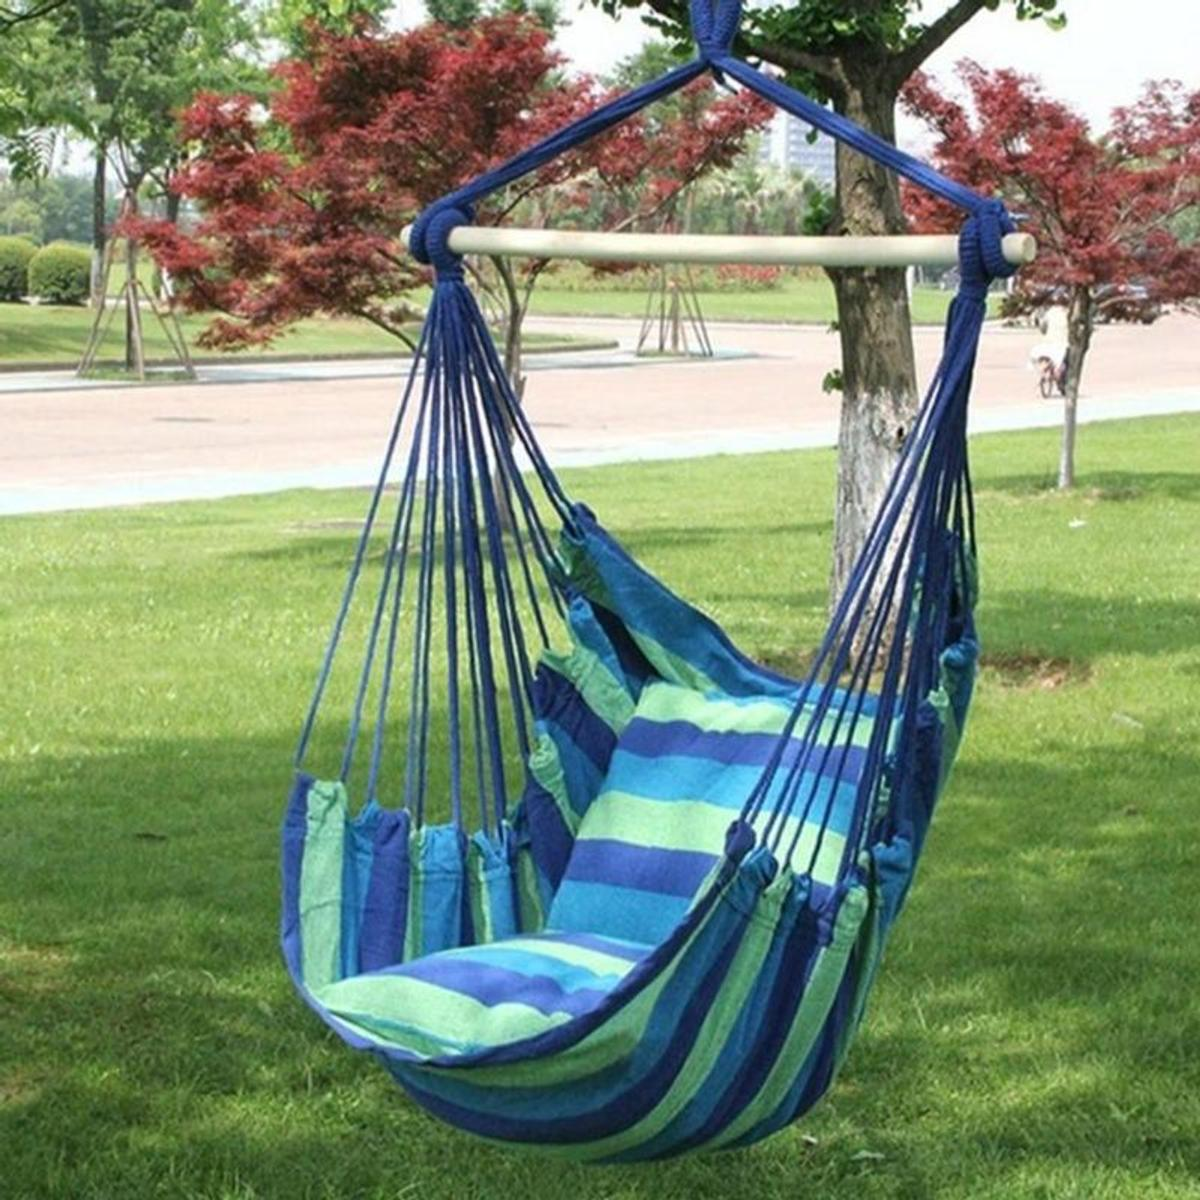 Camping Hammock Swing Chair In Sw1v Westminster For 25 00